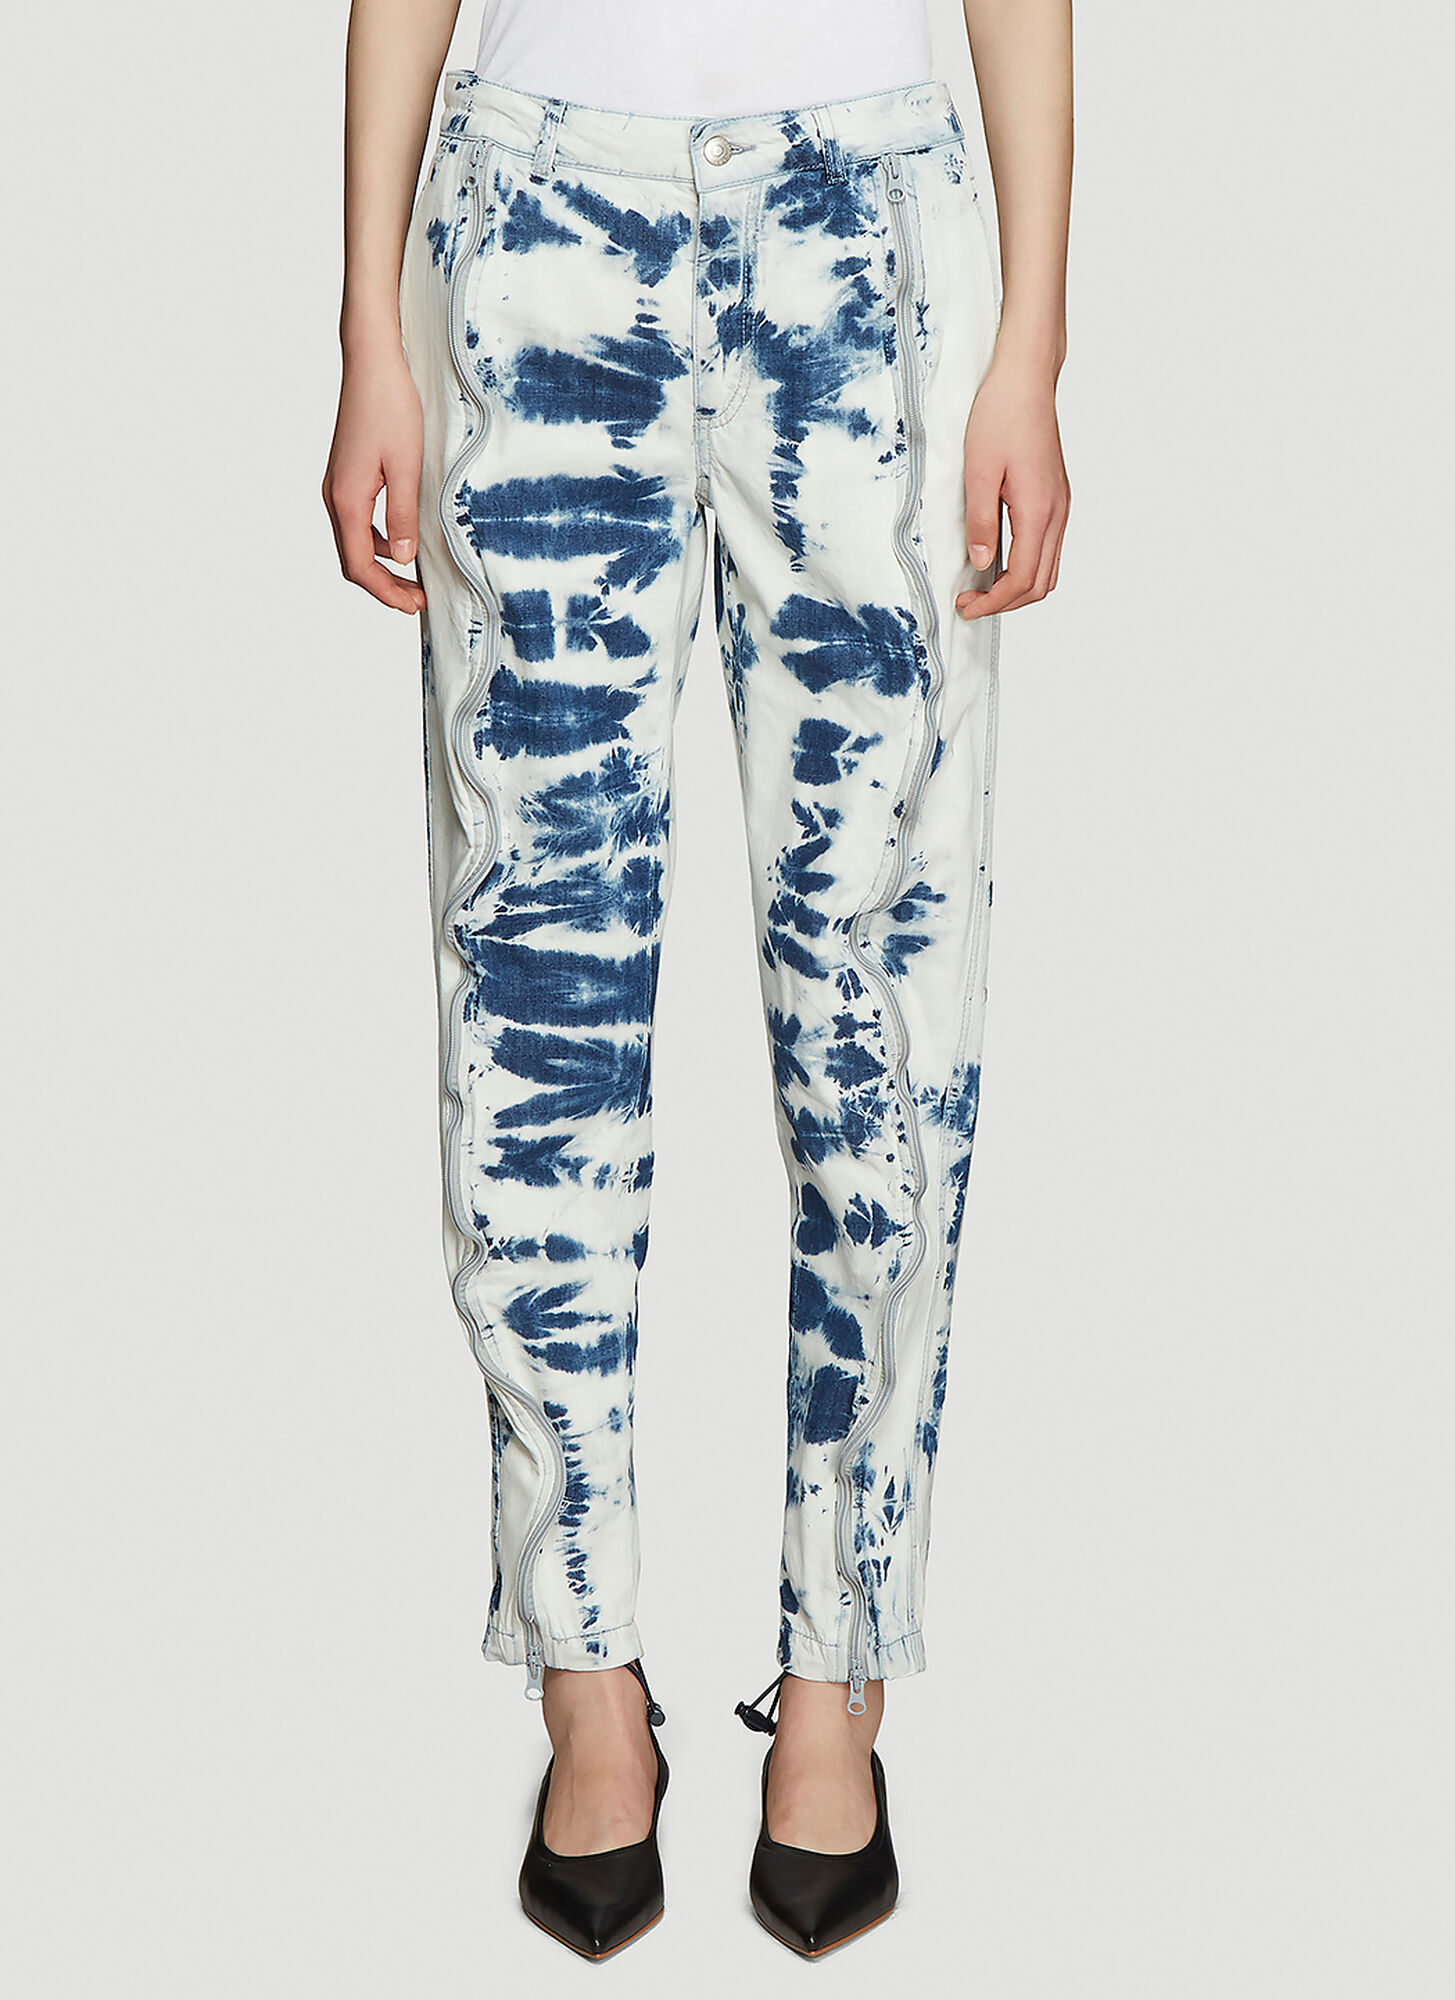 Photo of Stella McCartney Tie-Dyed Jeans in Blue - Stella McCartney Jeans